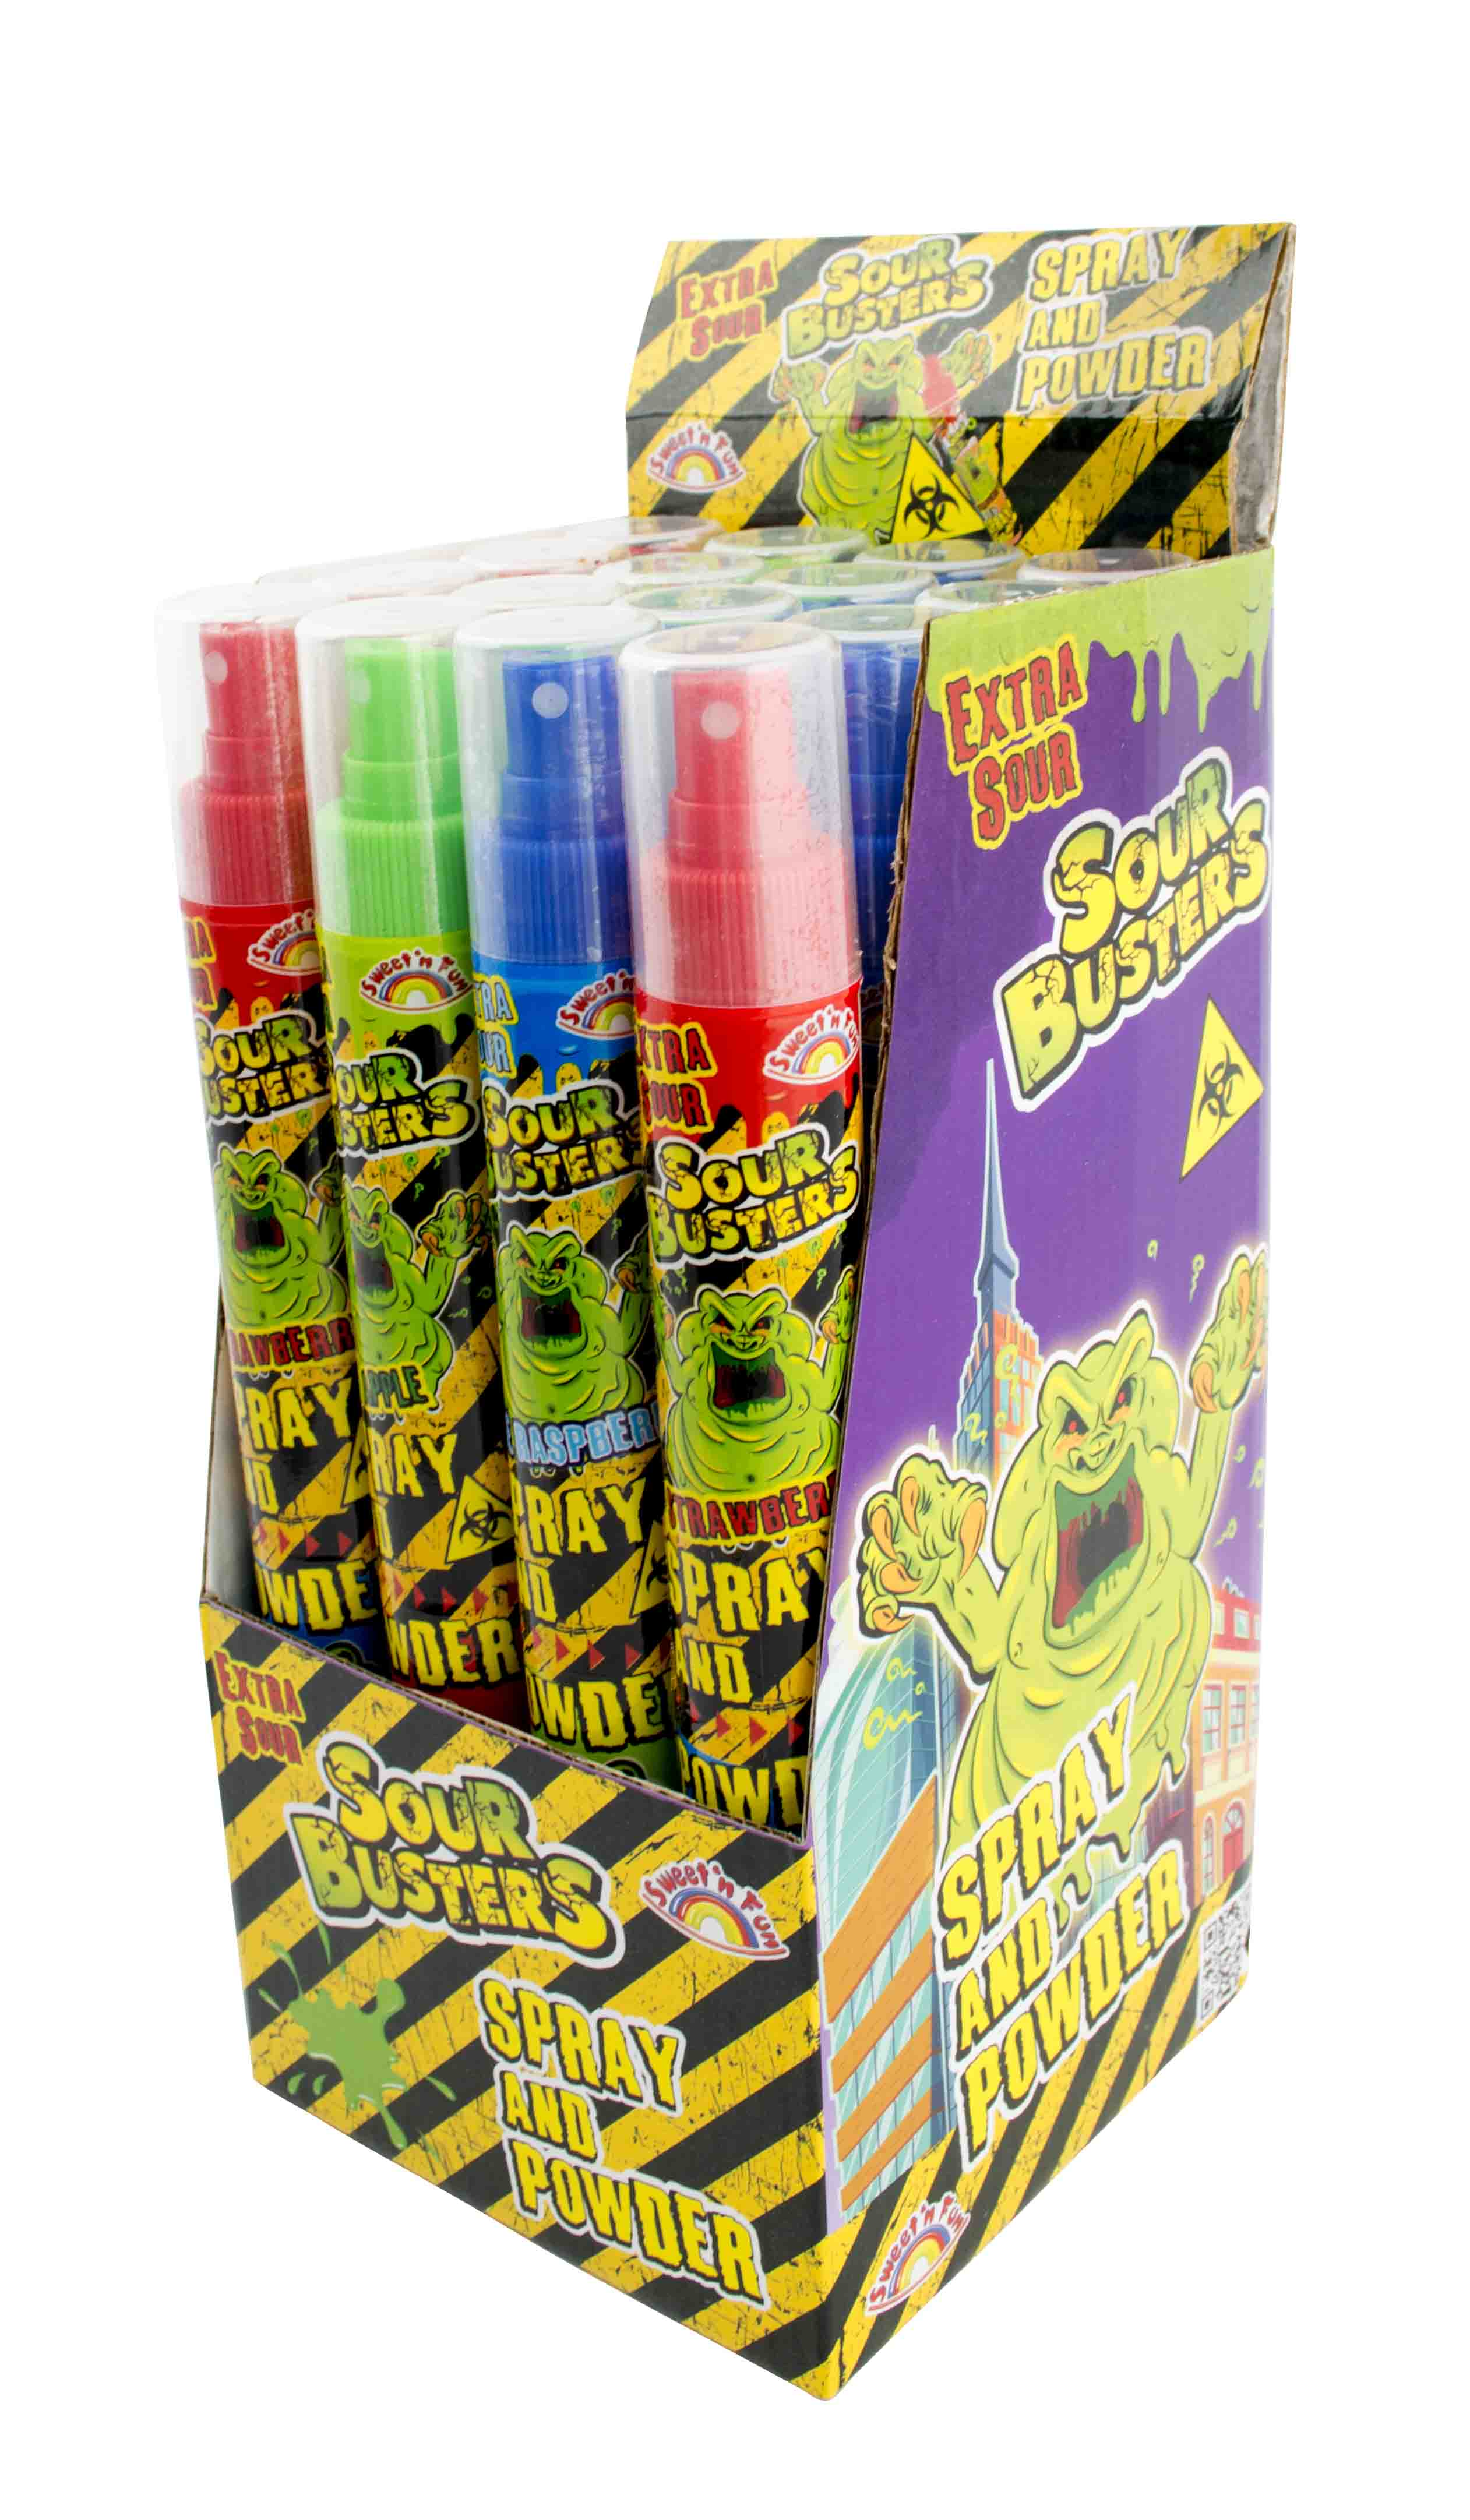 Sour Busters Spray and Powder – kyselý sprej s práškem 30g + 40ml